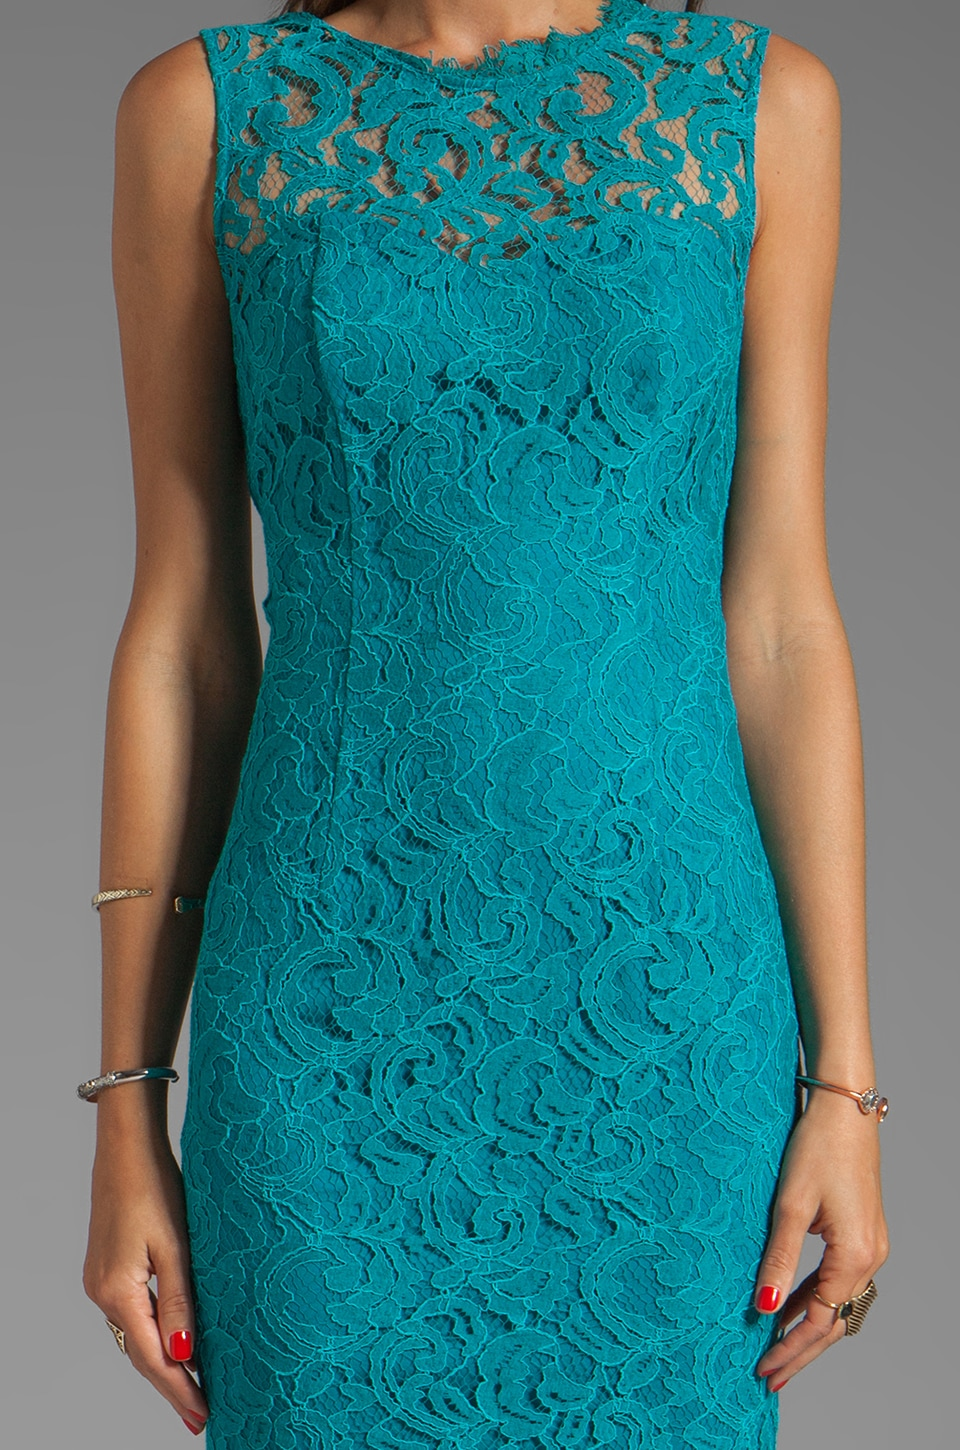 Dolce Vita Tamia Teal Lace Tank Dress in Teal